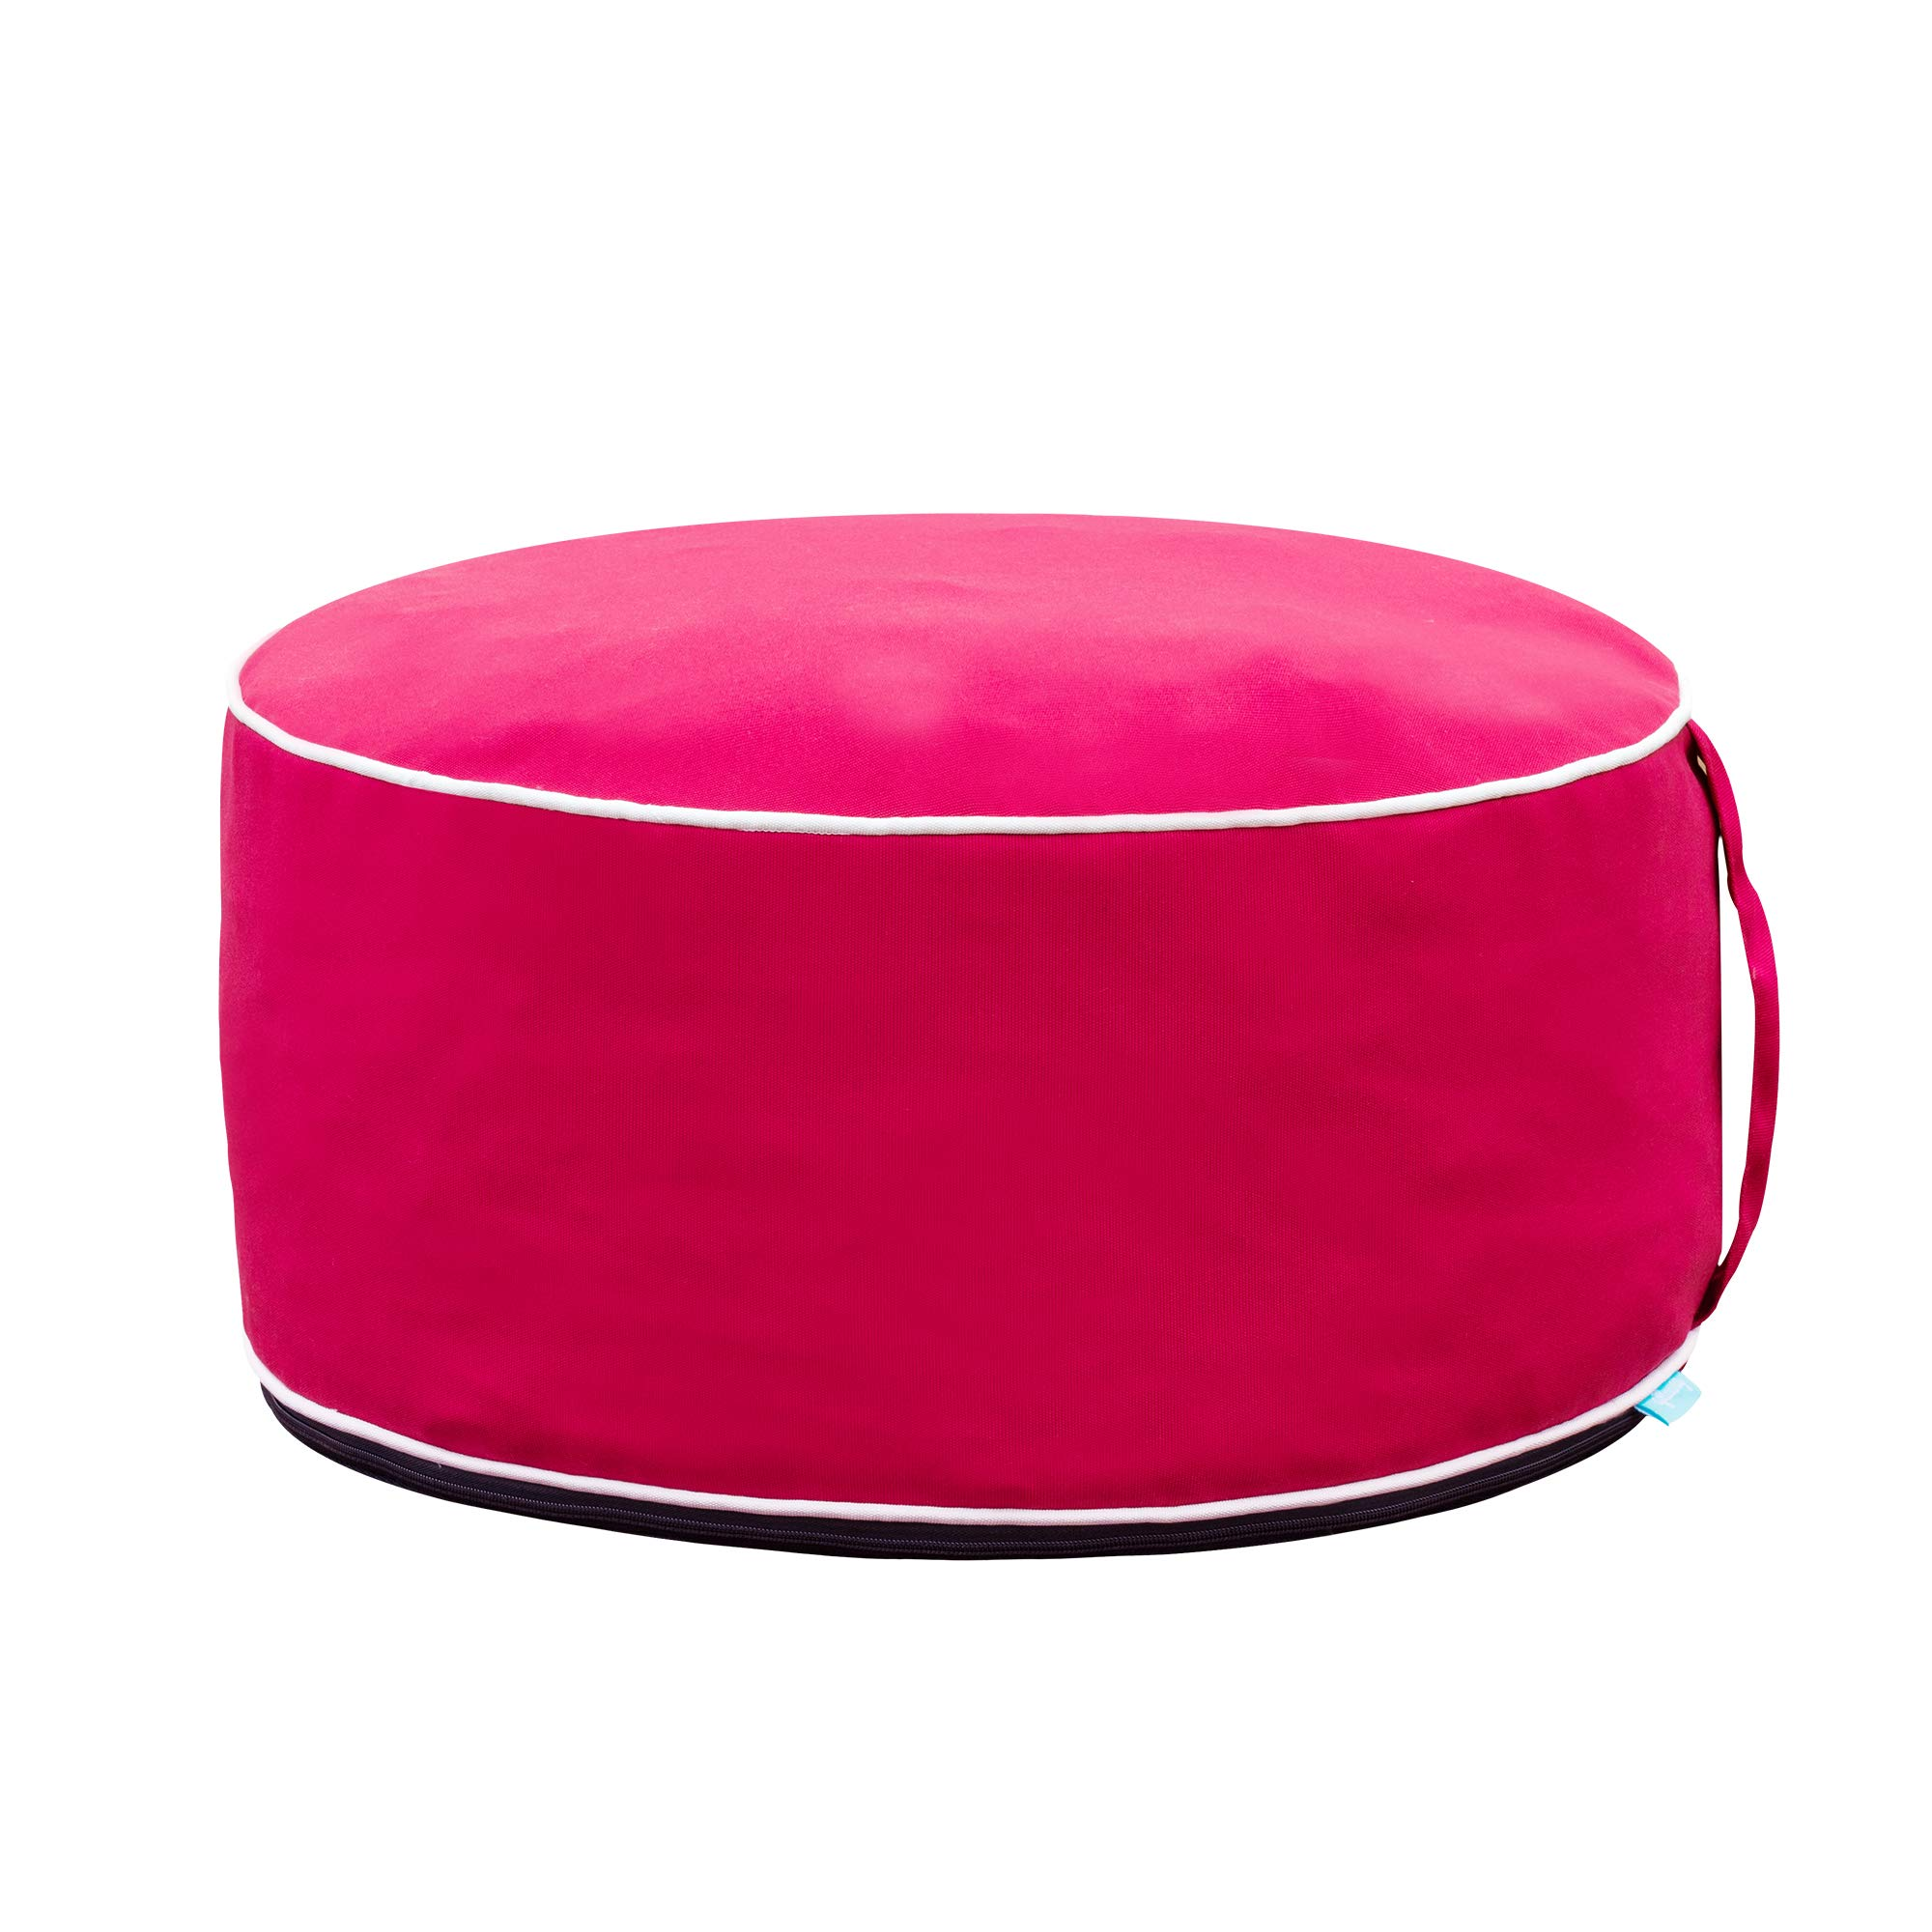 QILLOWAY Indoor/Outdoor Inflatable Stool,Round Ottoman,Foot Rest for Kids or Adults, Camping or Home (RED)